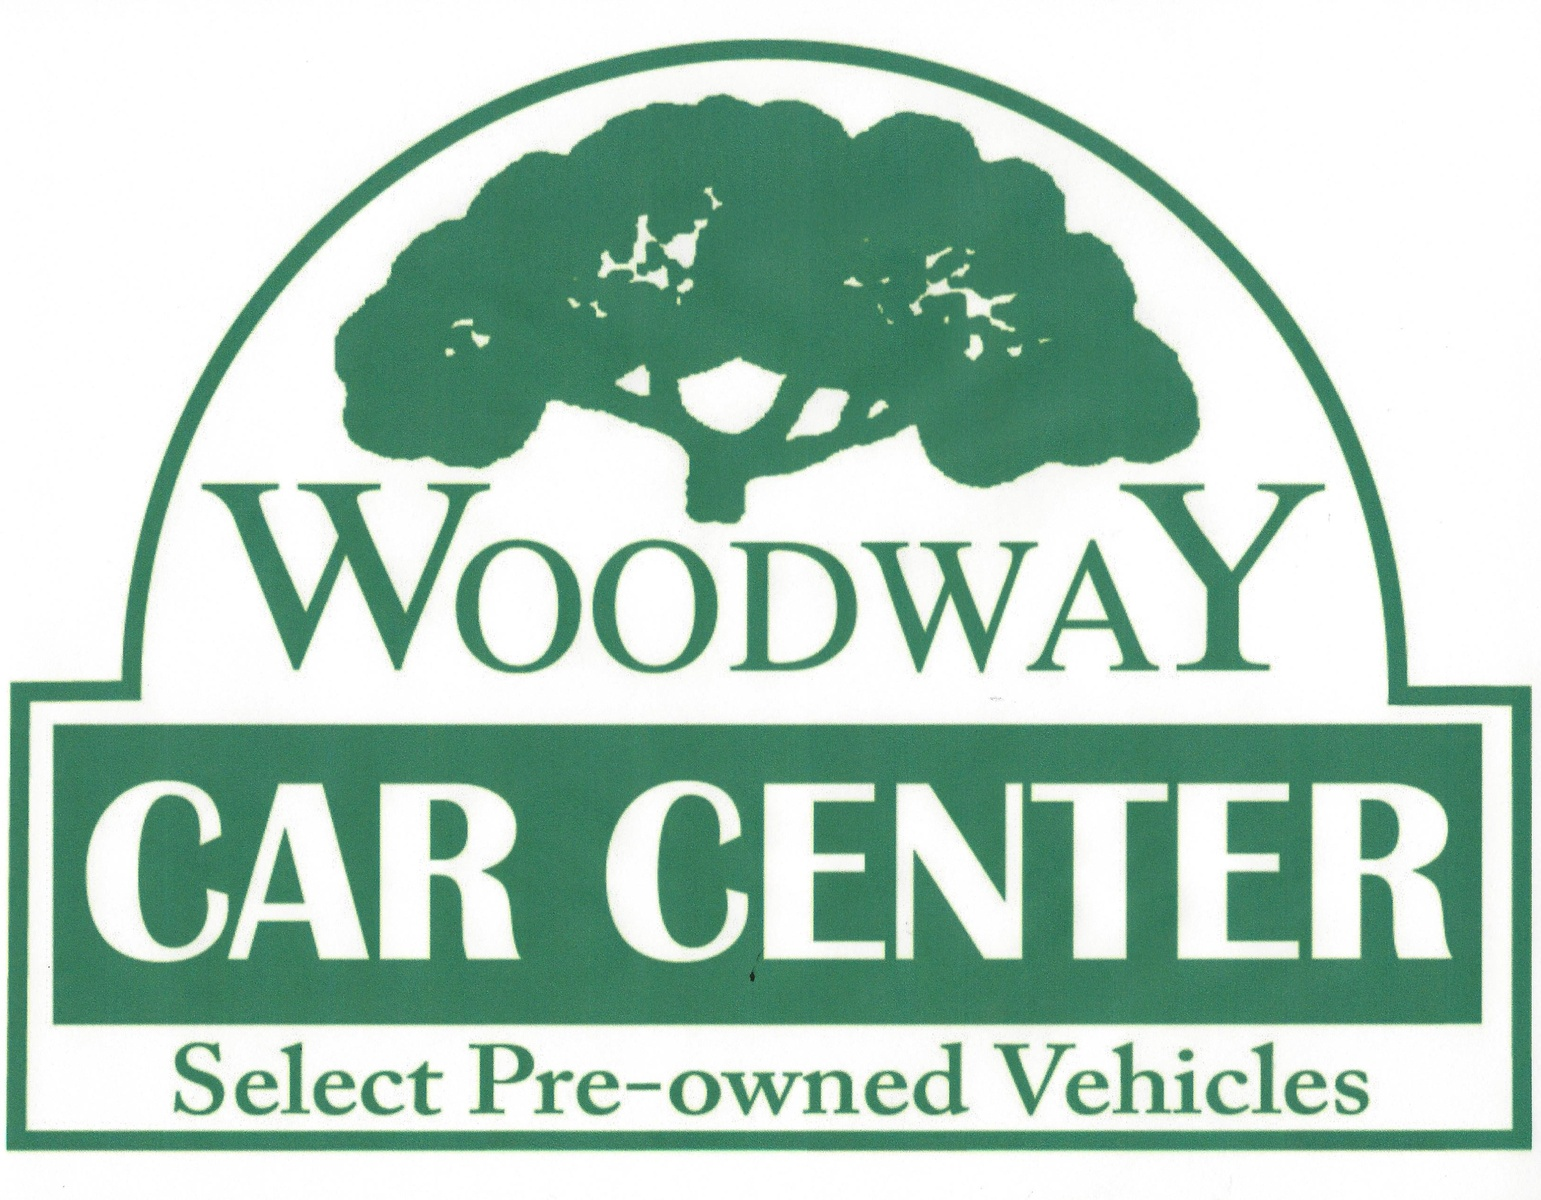 Woodway Car Center - Woodway, TX: Read Consumer reviews ...